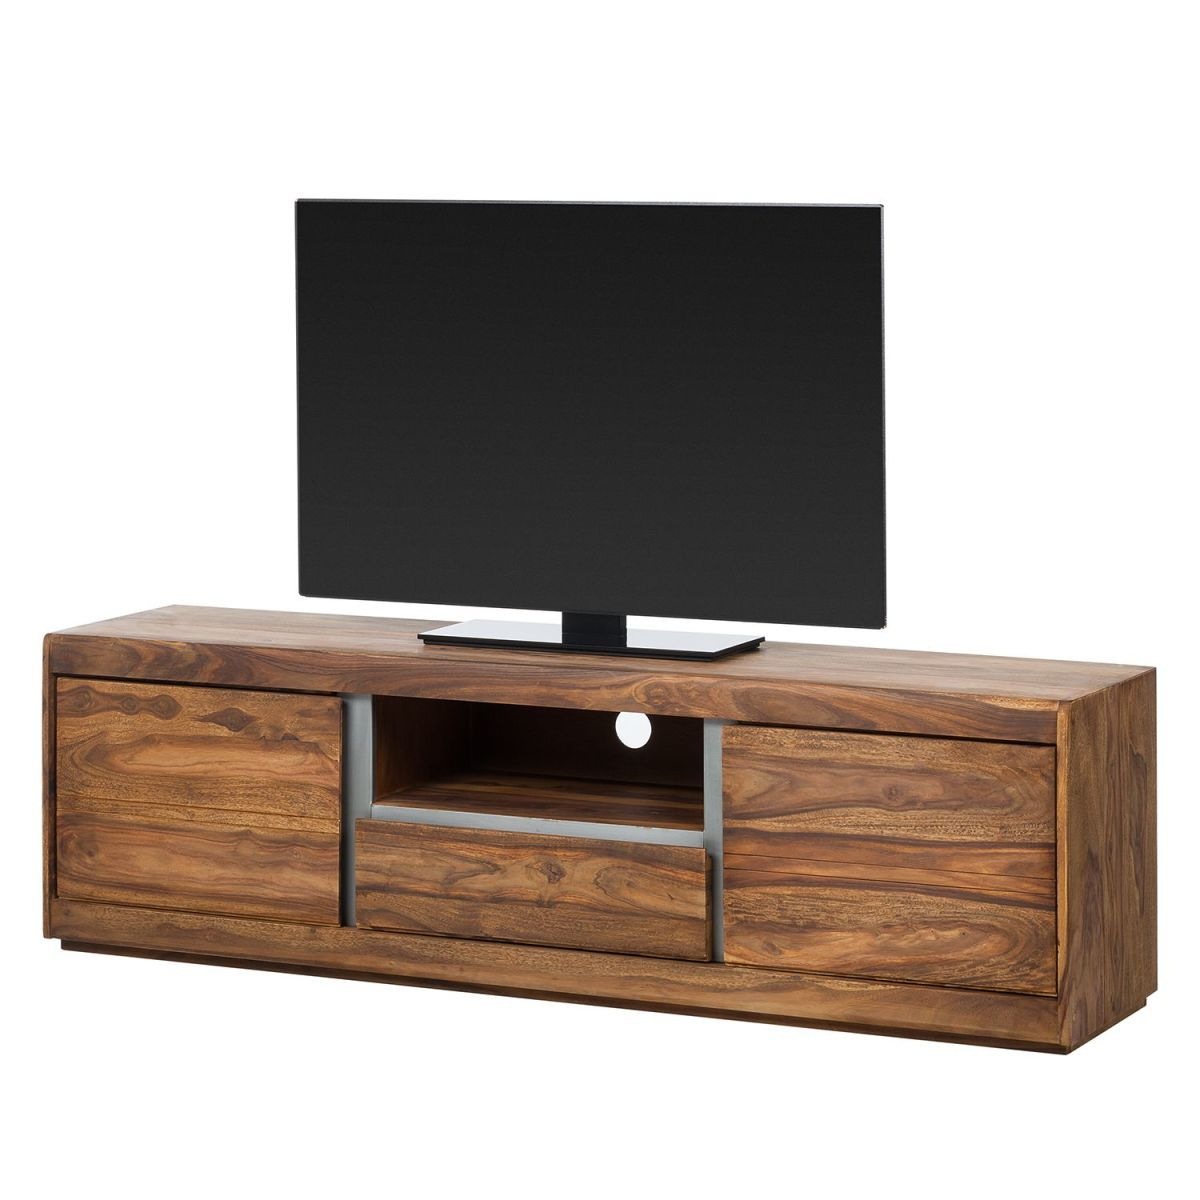 Tv Schrank Kernbuche Pin By Ladendirekt On Tv Hifi Möbel Cabinet Furniture Furniture